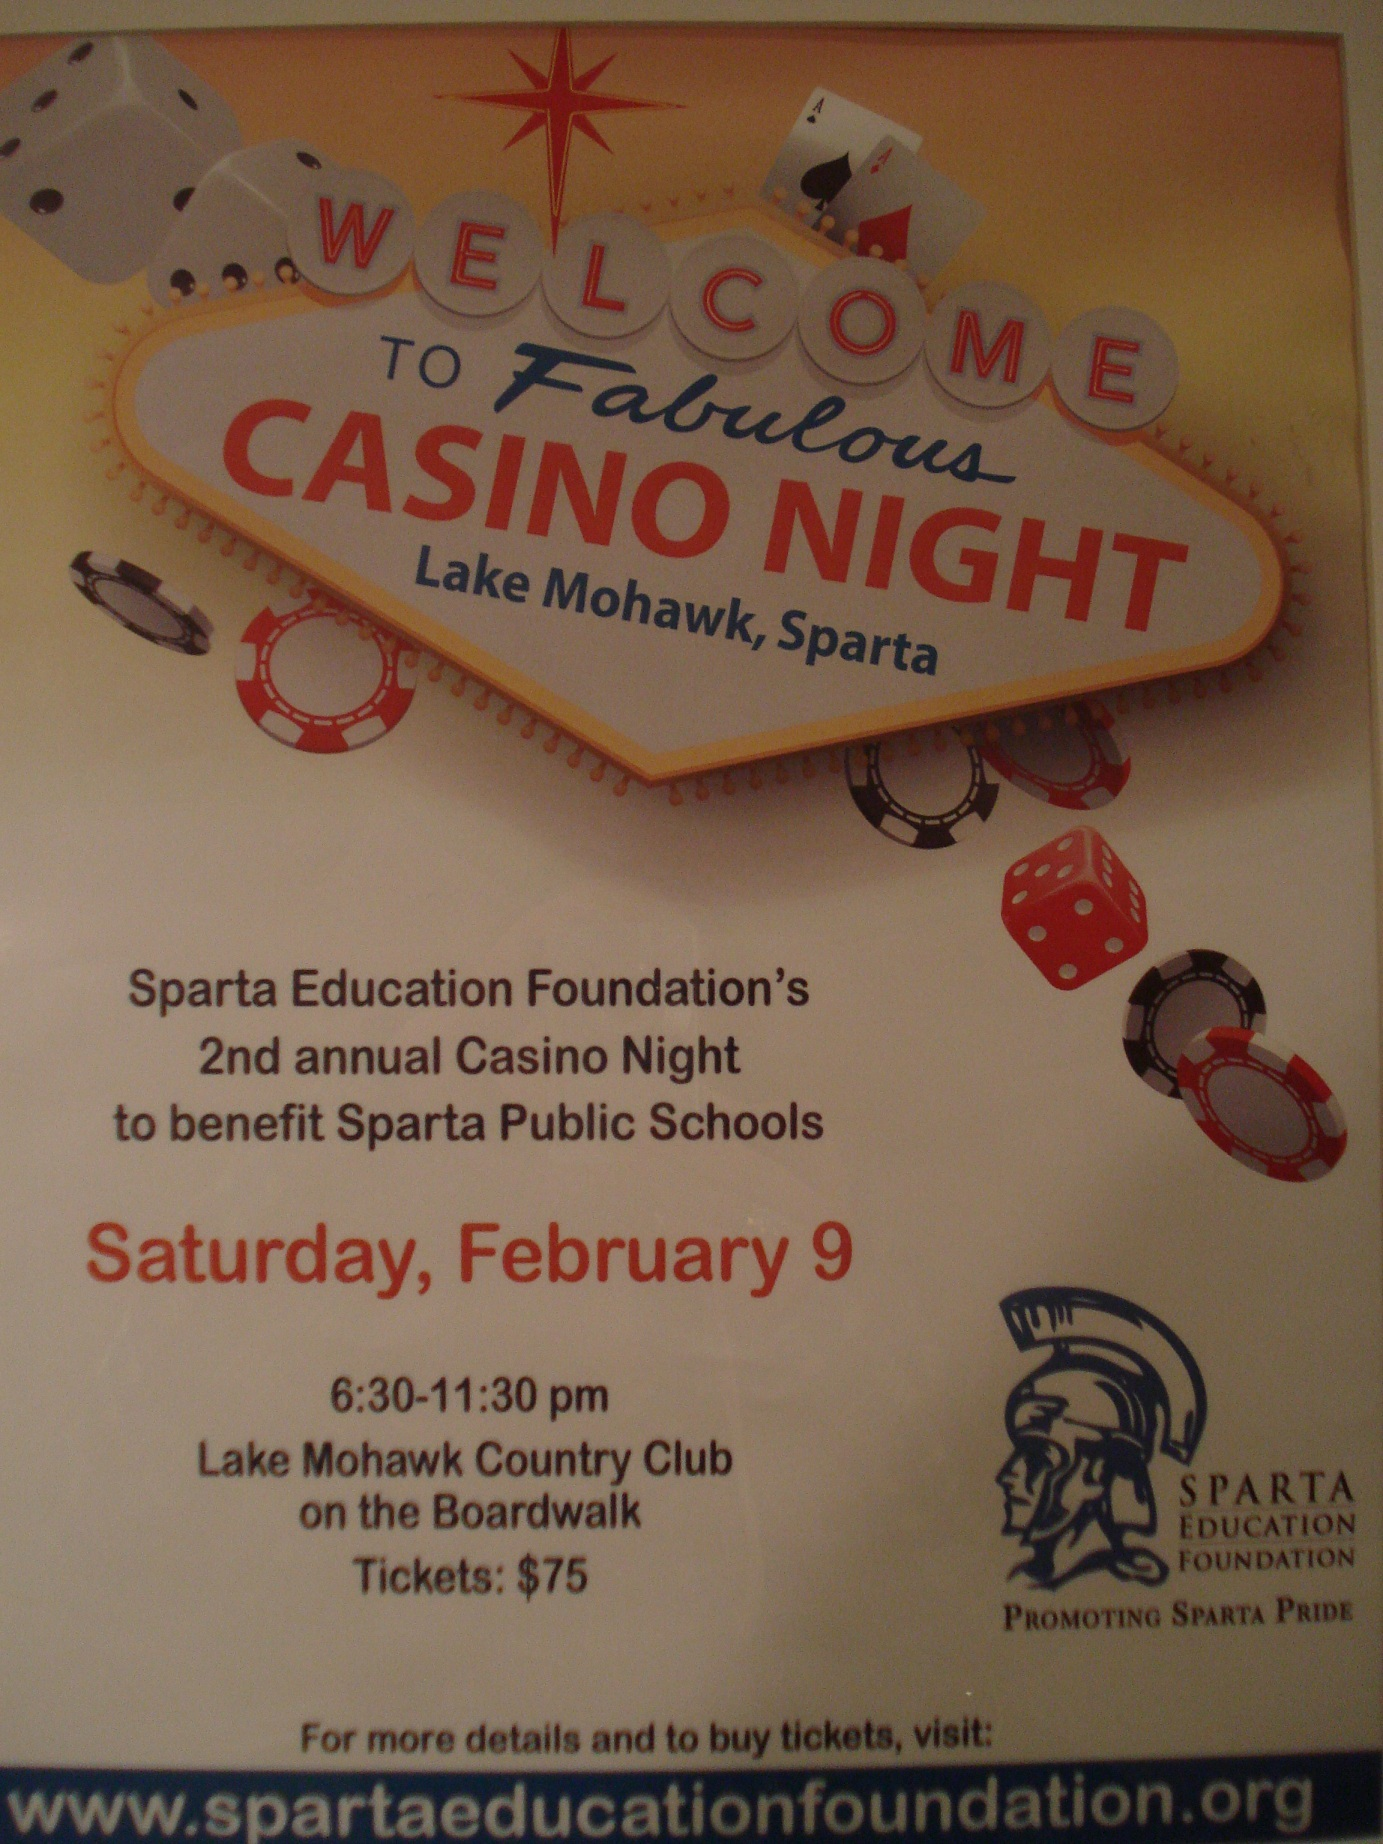 cbceb31b7993acbd65d7_Casino_Night_001.JPG